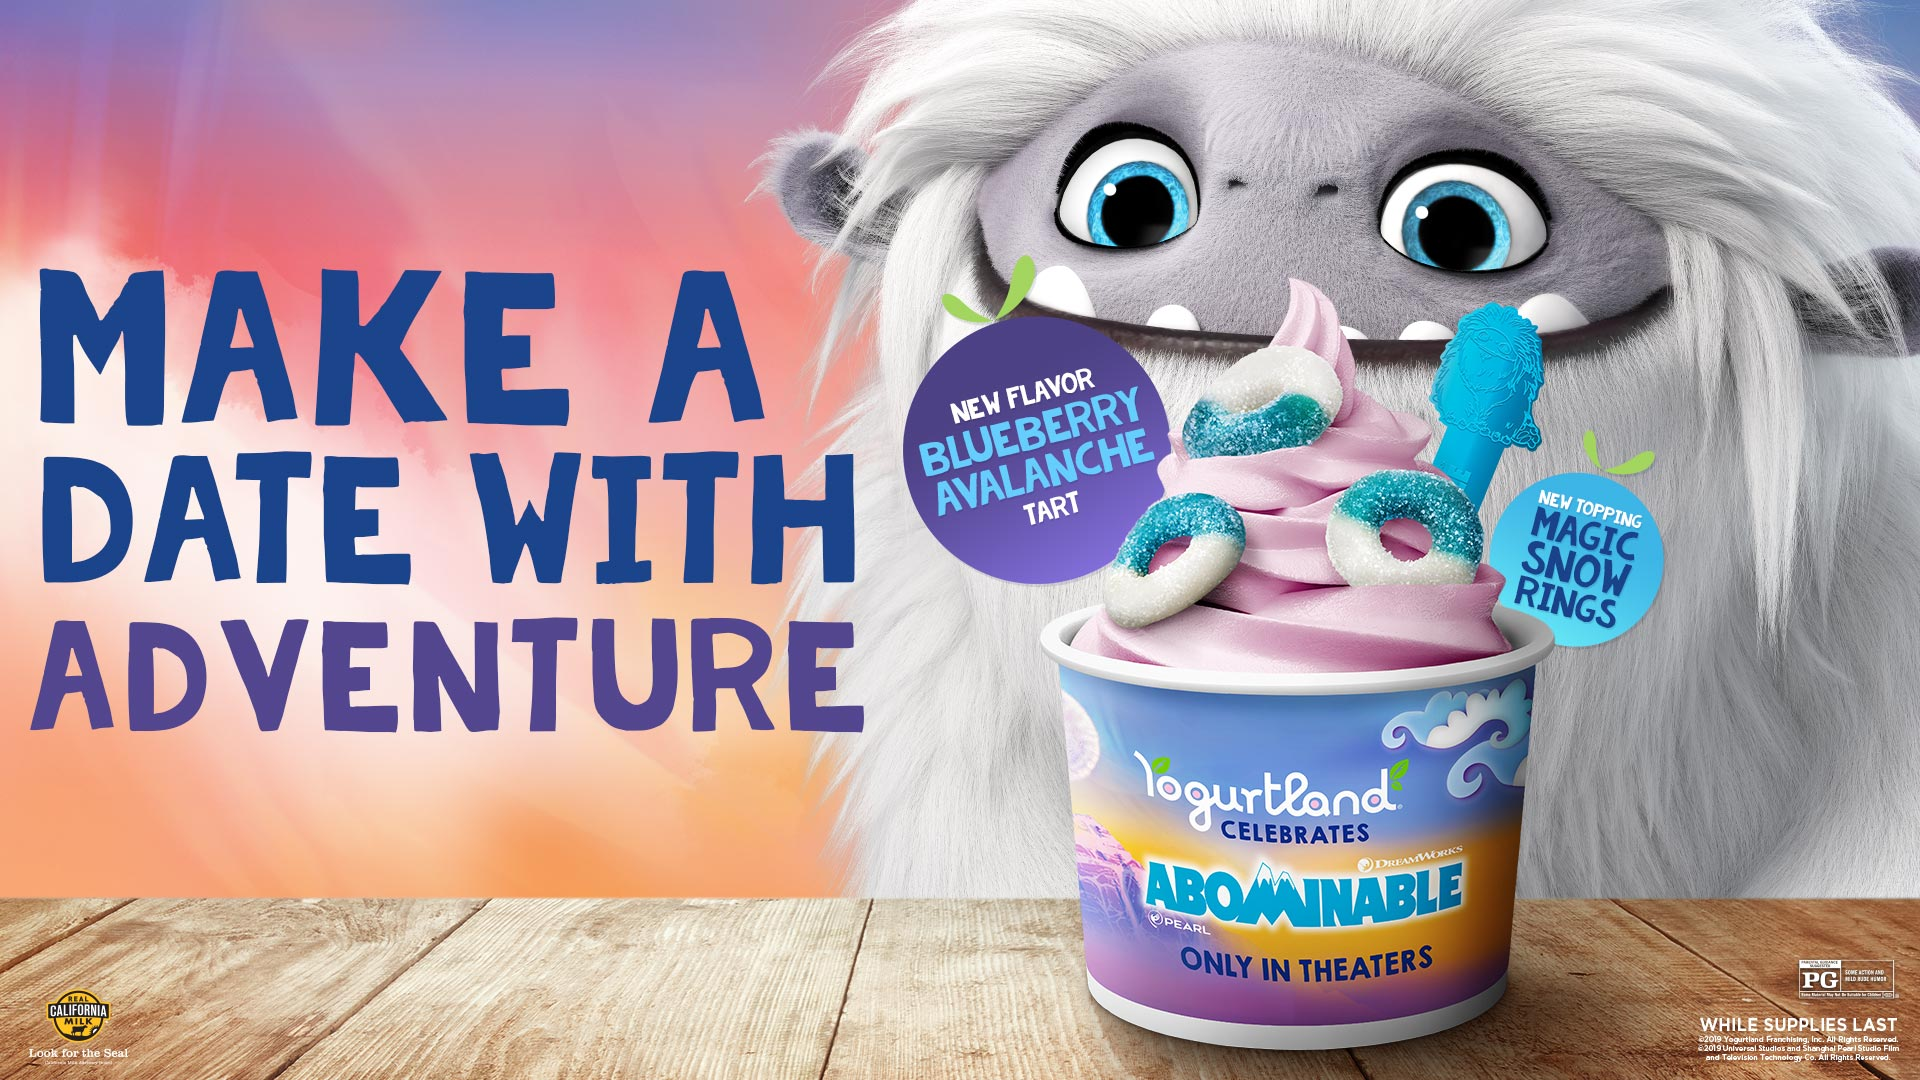 Make a date with adventure! New flavor: Blueberry Avalanche Tart. New topping: Magic Snow Rings. While supplies last.